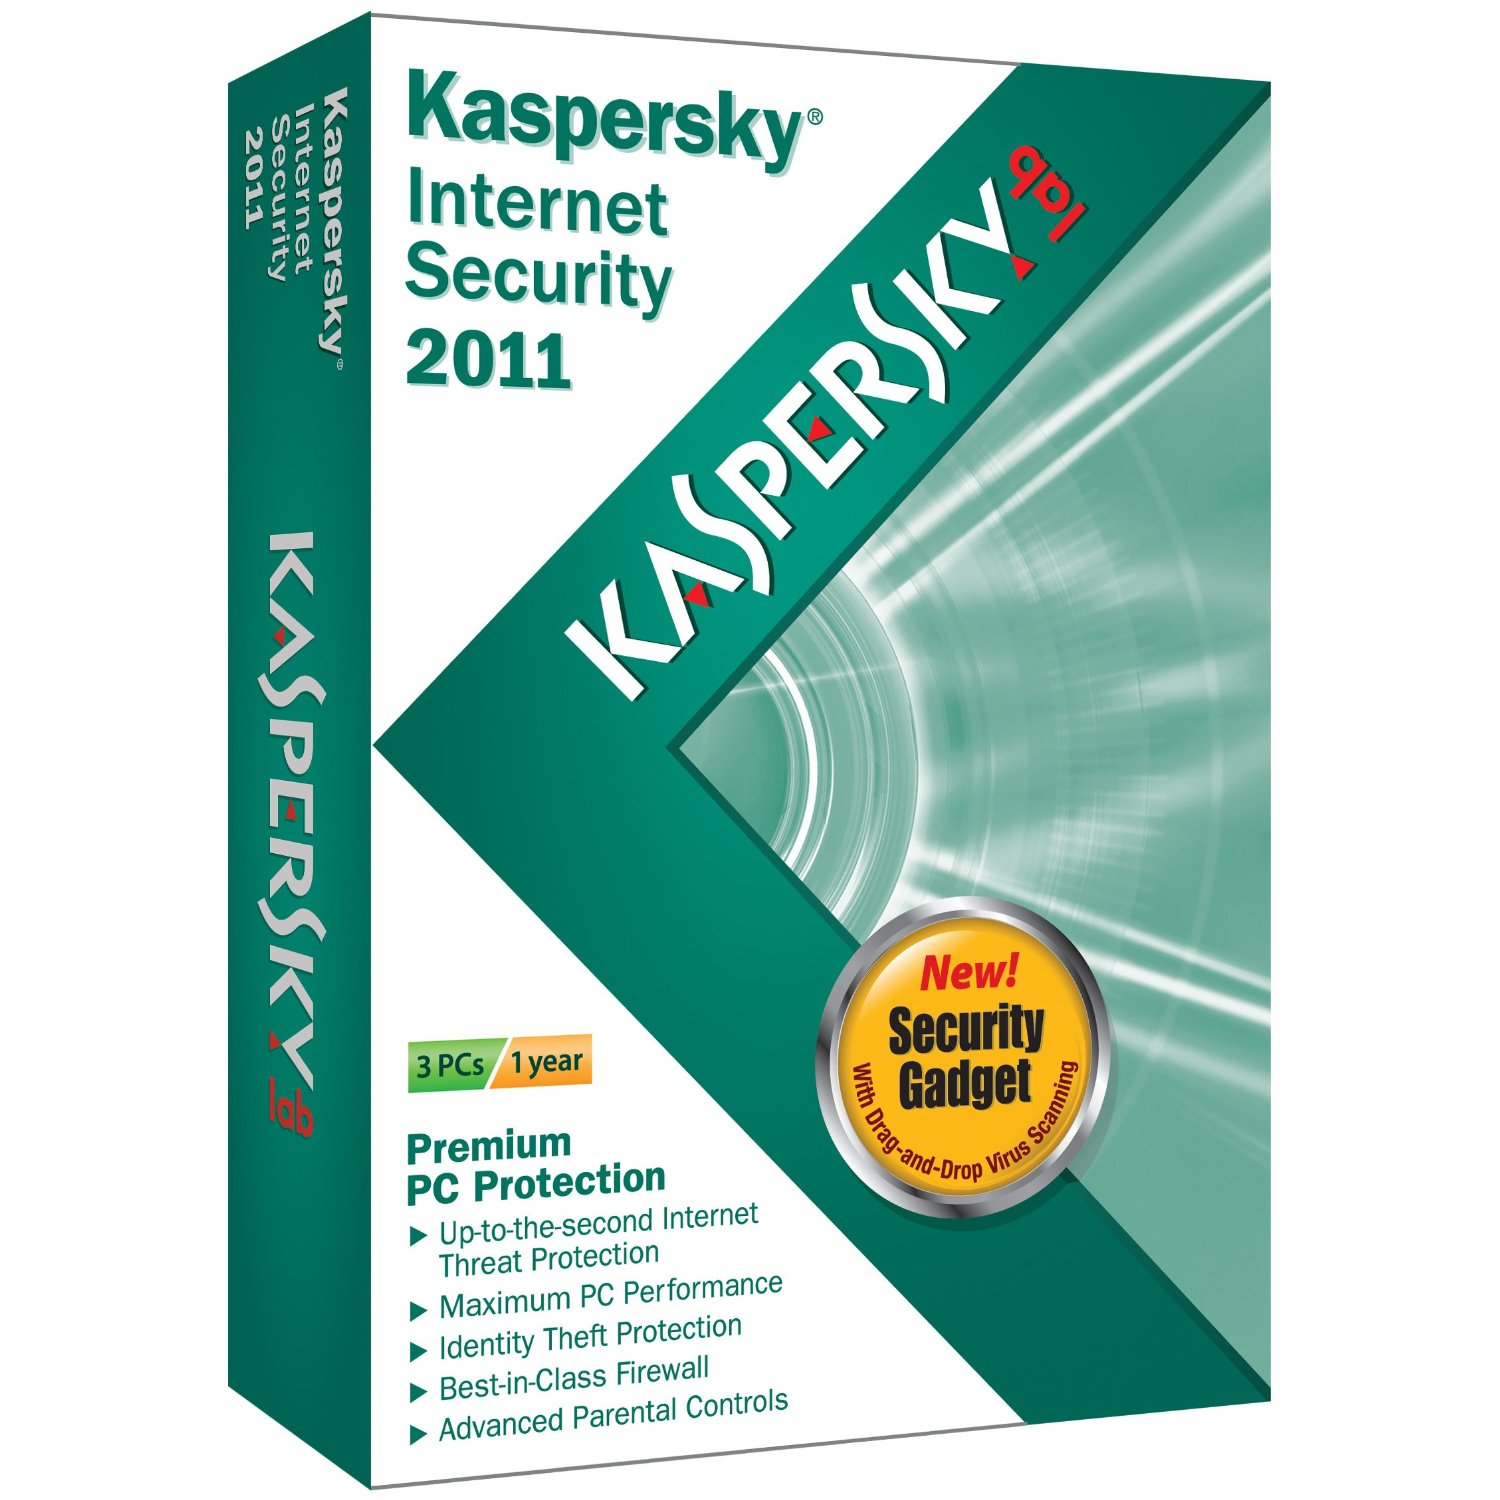 PC Virus Protection Software